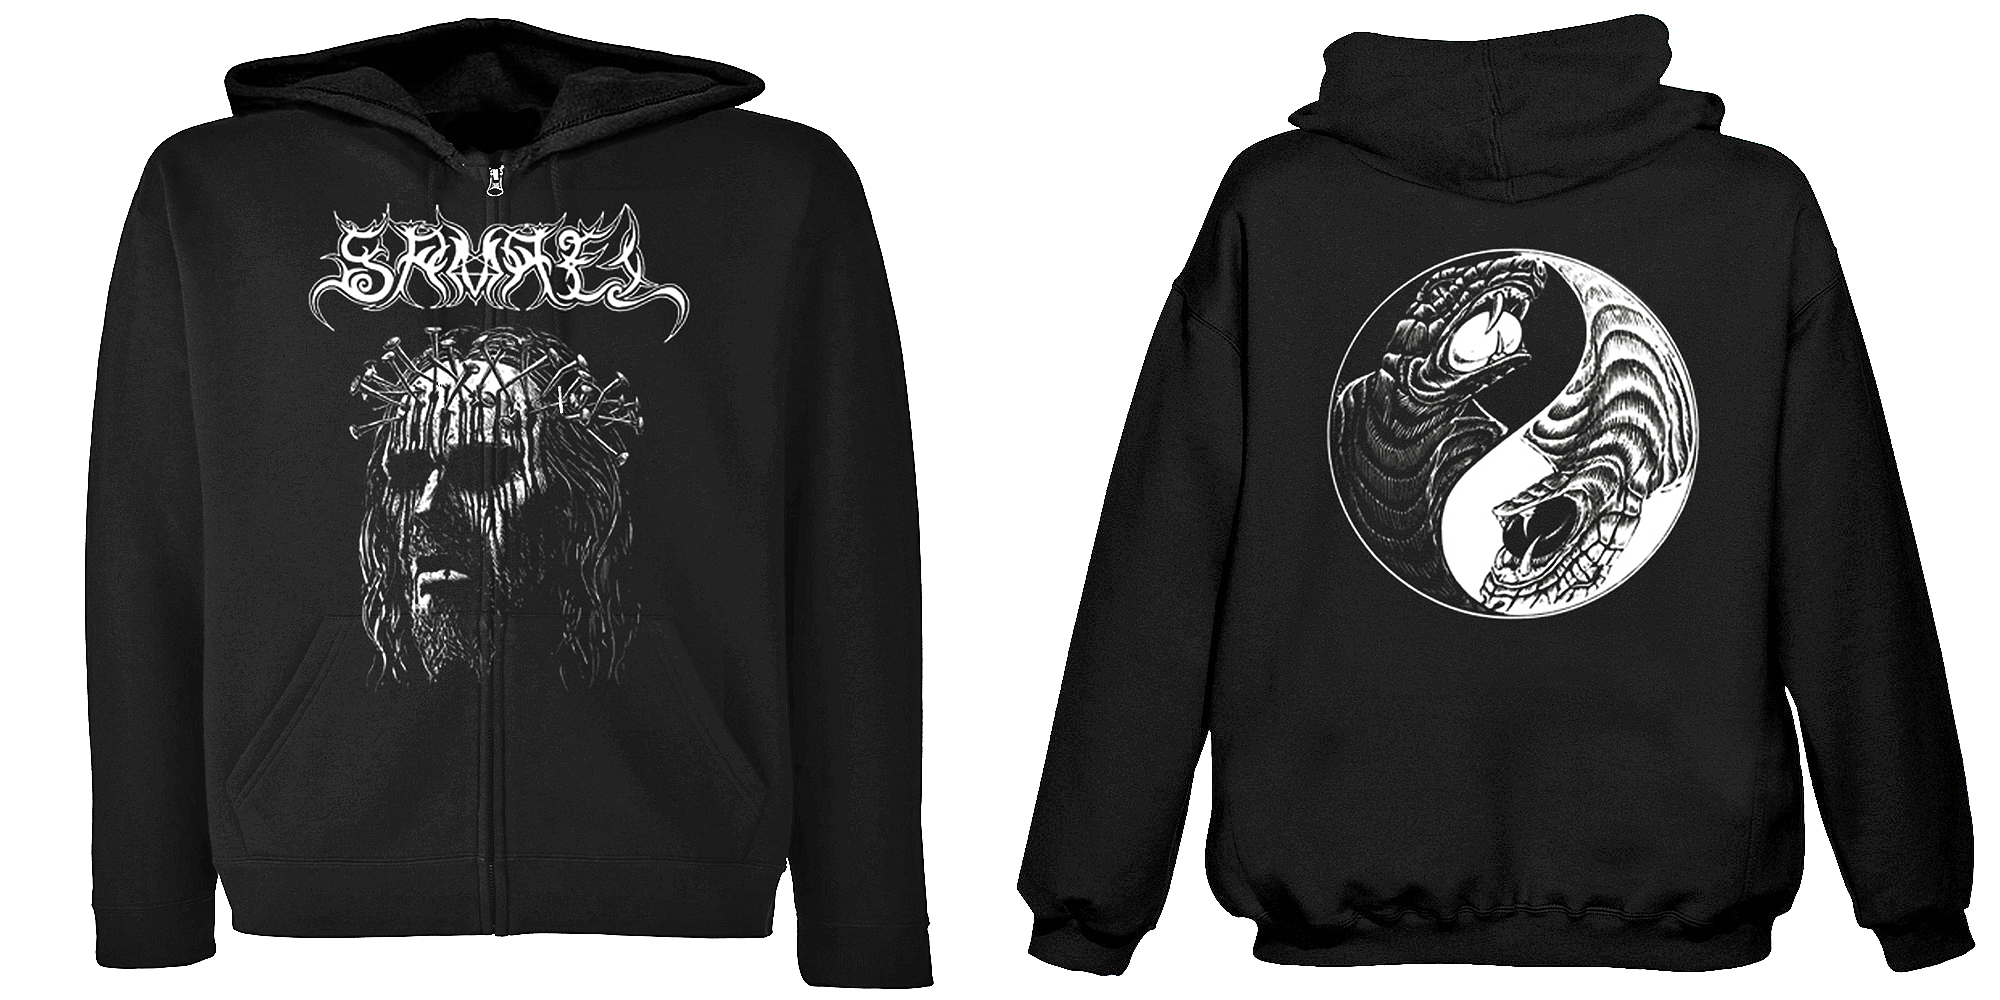 Samael - Ceremony of Opposites  (Hooded Zipper)